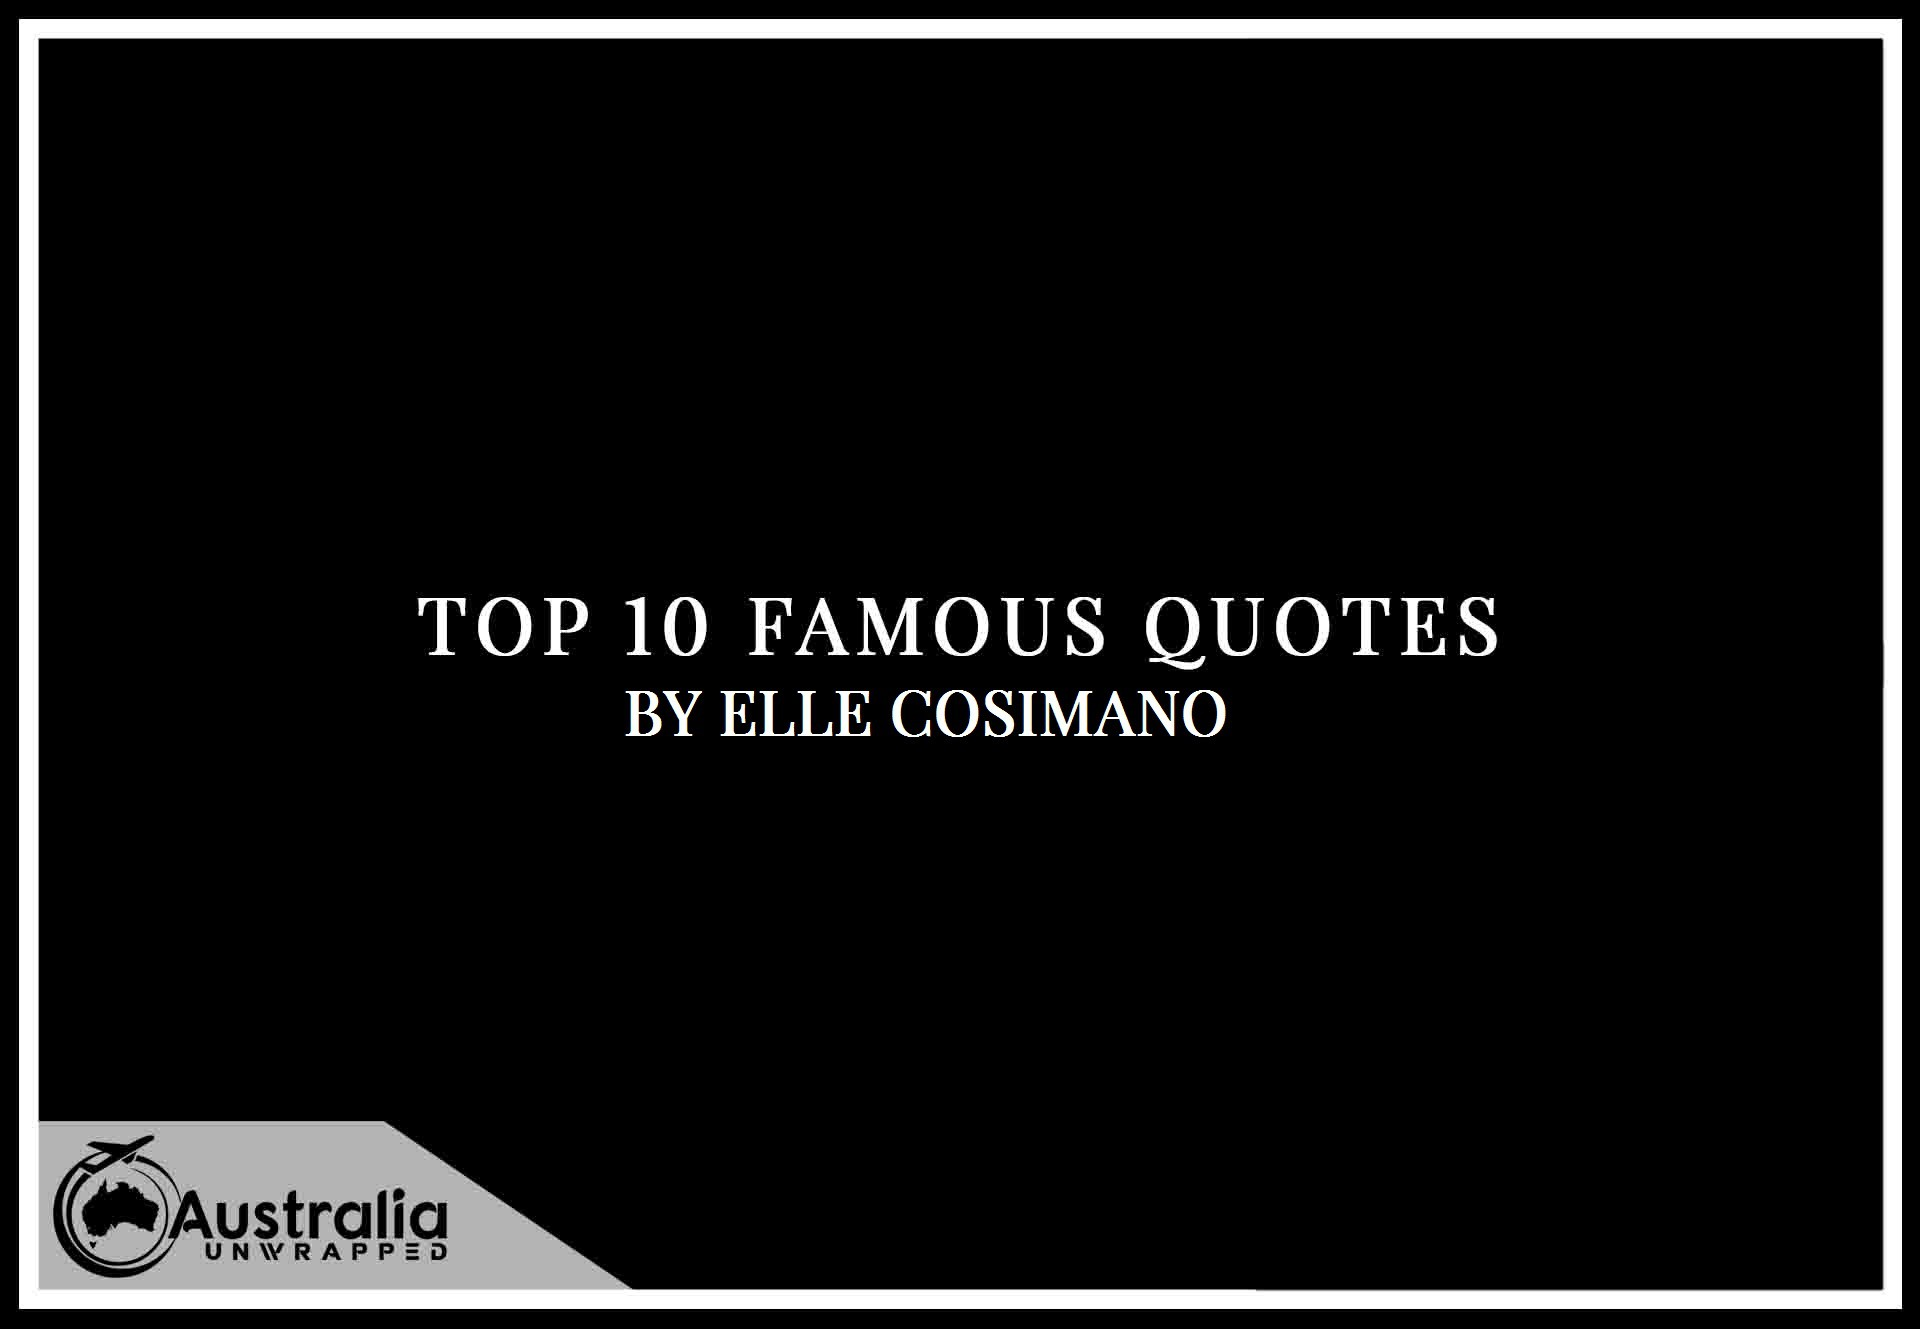 Elle Cosimano's Top 10 Popular and Famous Quotes